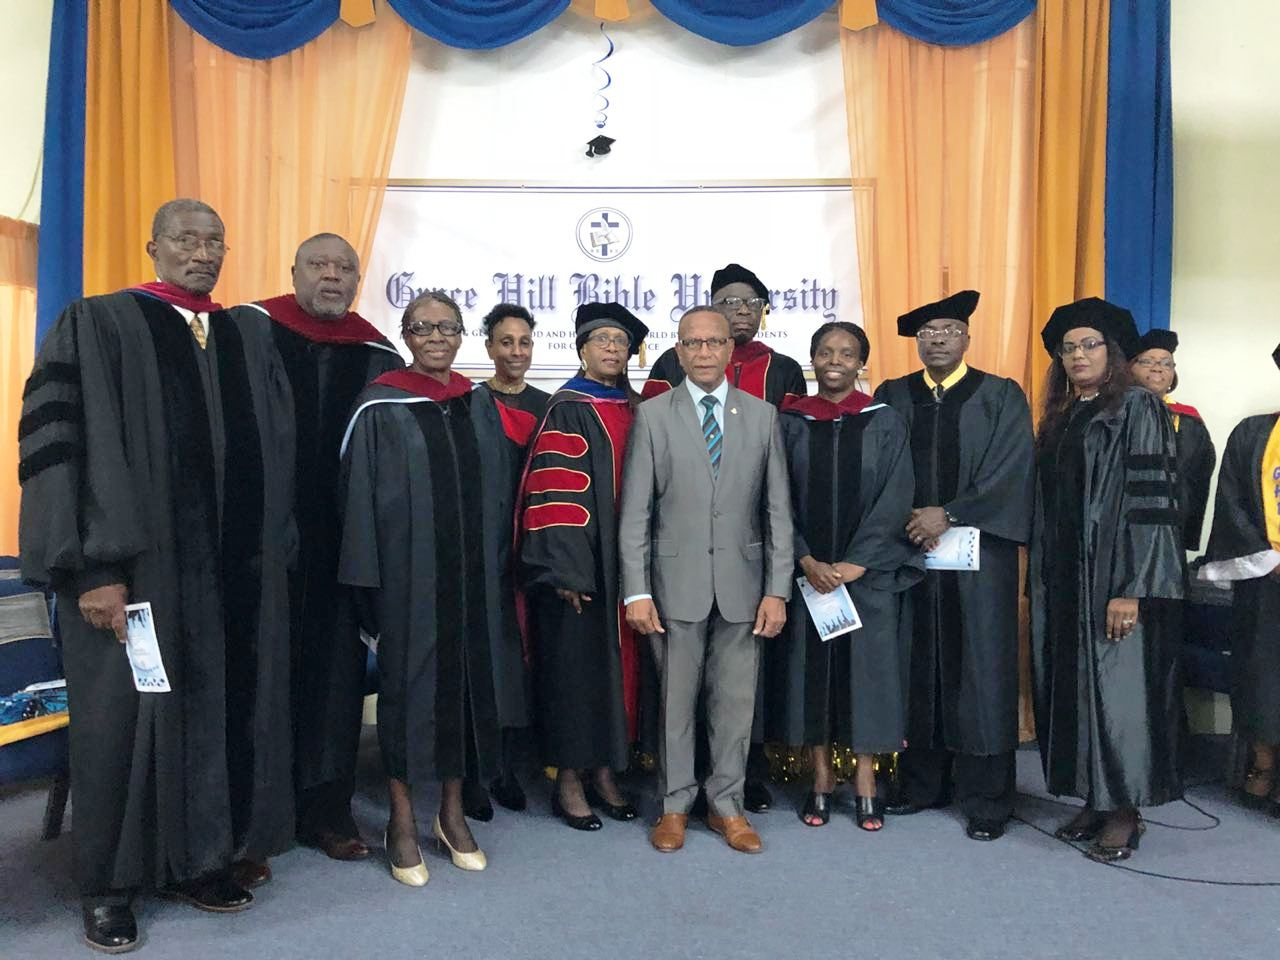 The former minister of education Wycliffe Smith with faculty and staff of GHBU at 2018 commencement